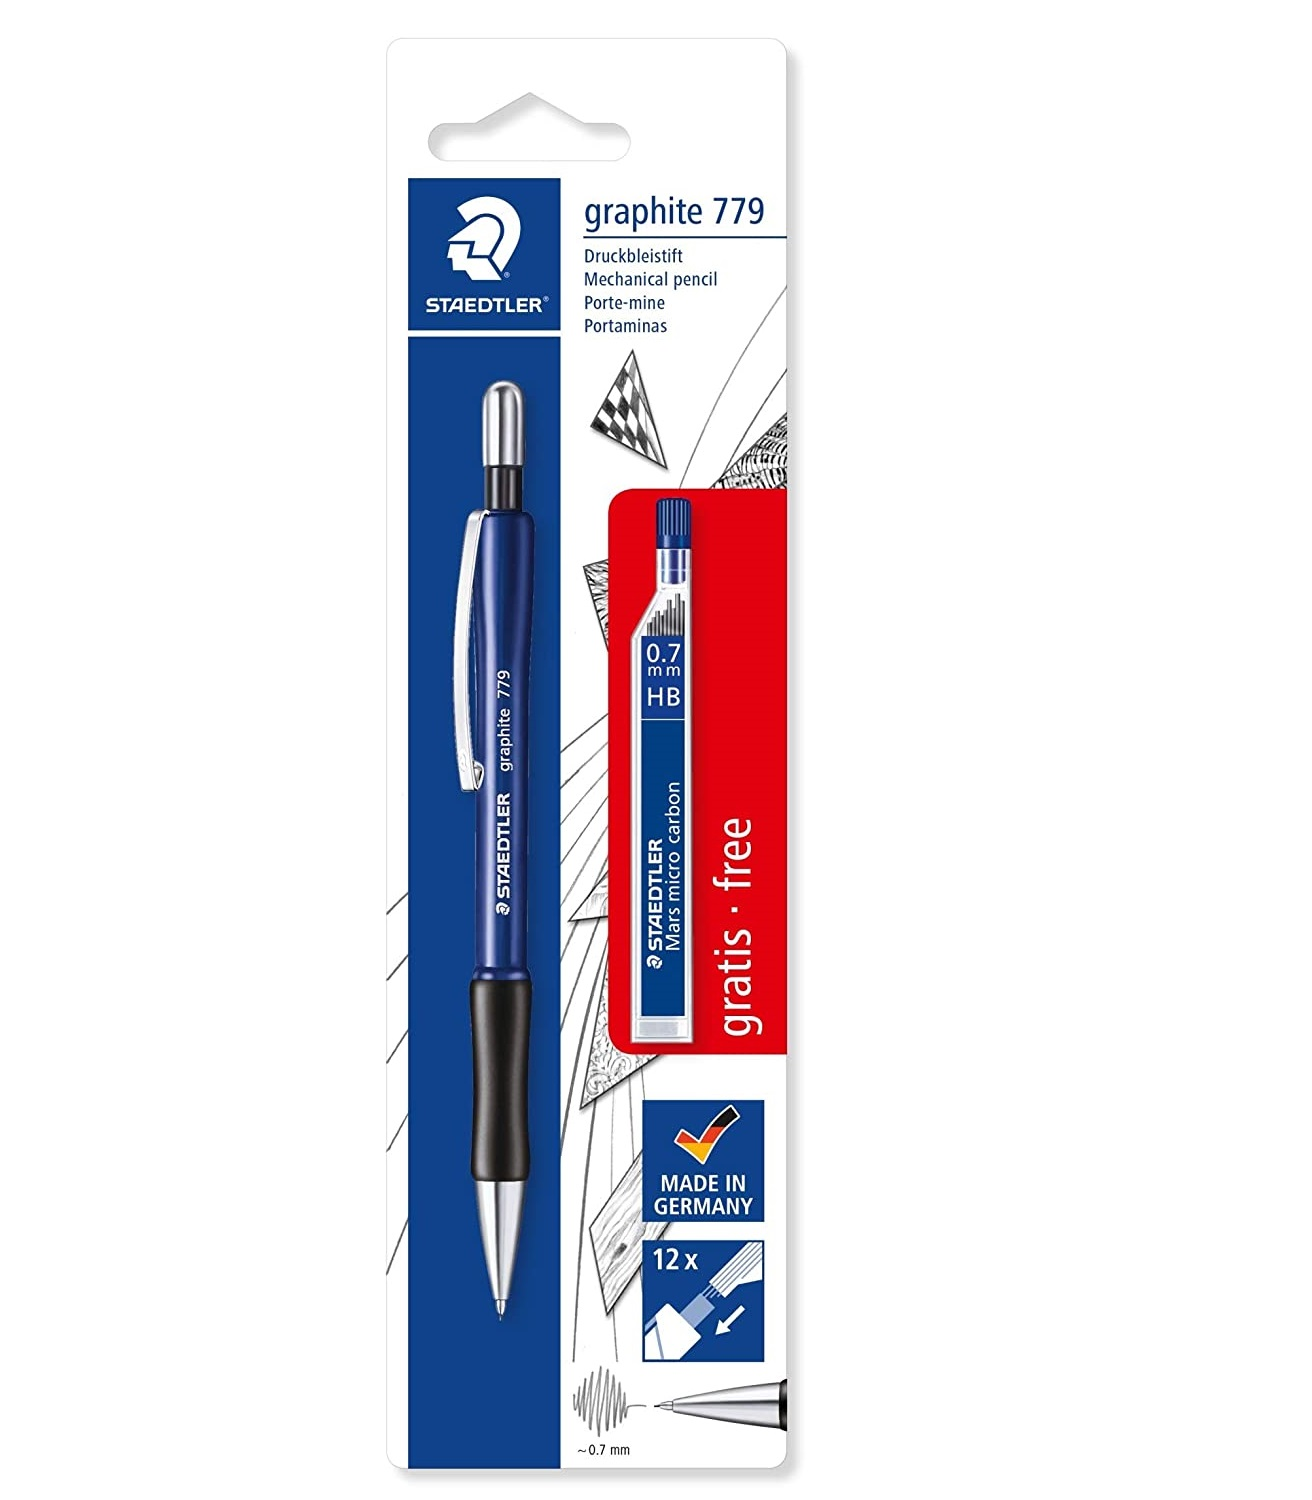 Staedtler Graphite 779 0.7mm Mechanical Pencil - color variations (Black/Blue)